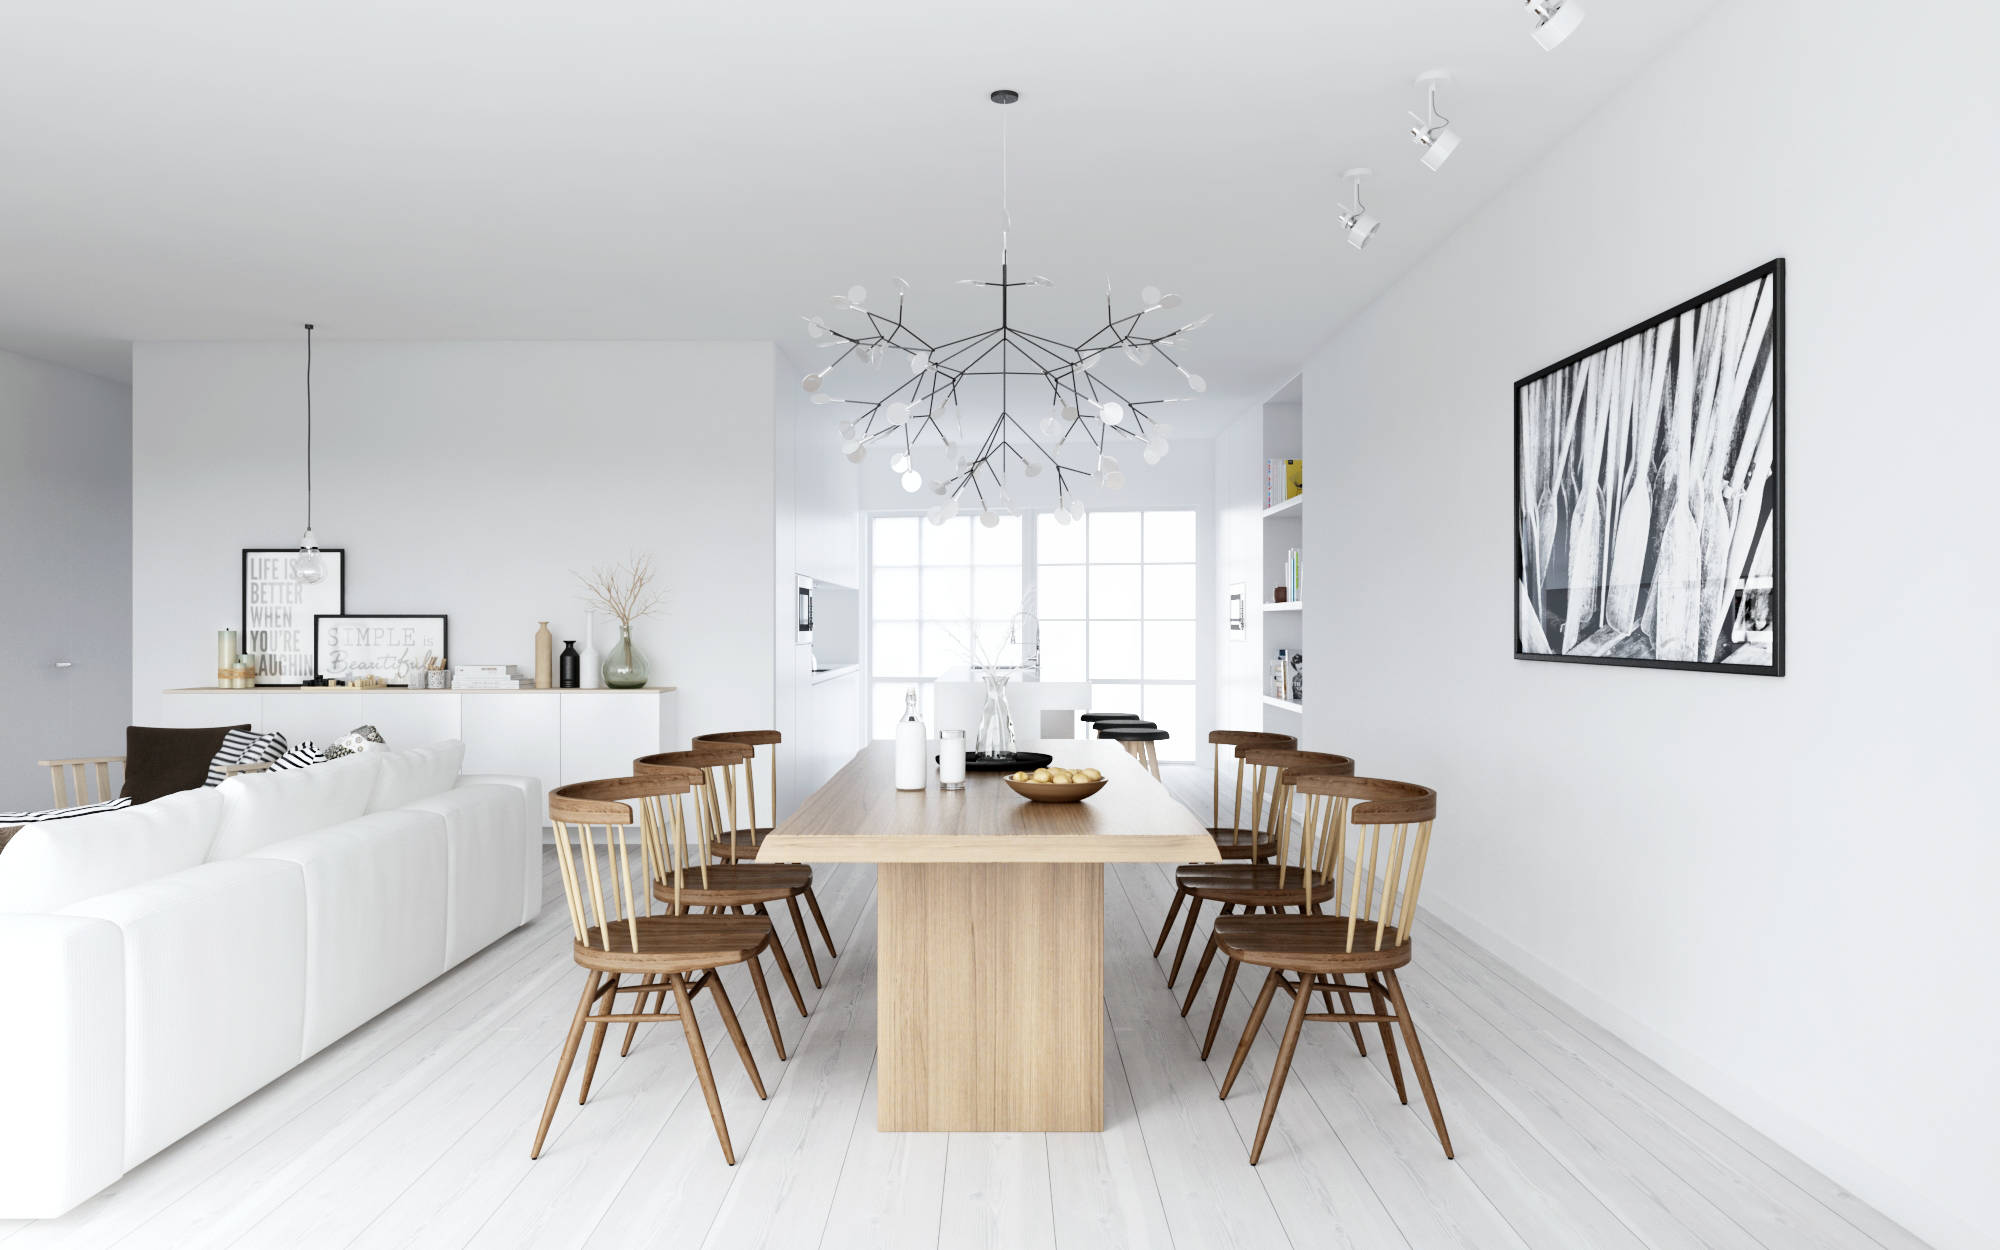 ATDesign Nordic Style Dining In Monochrome And Wood - Nordic interior design